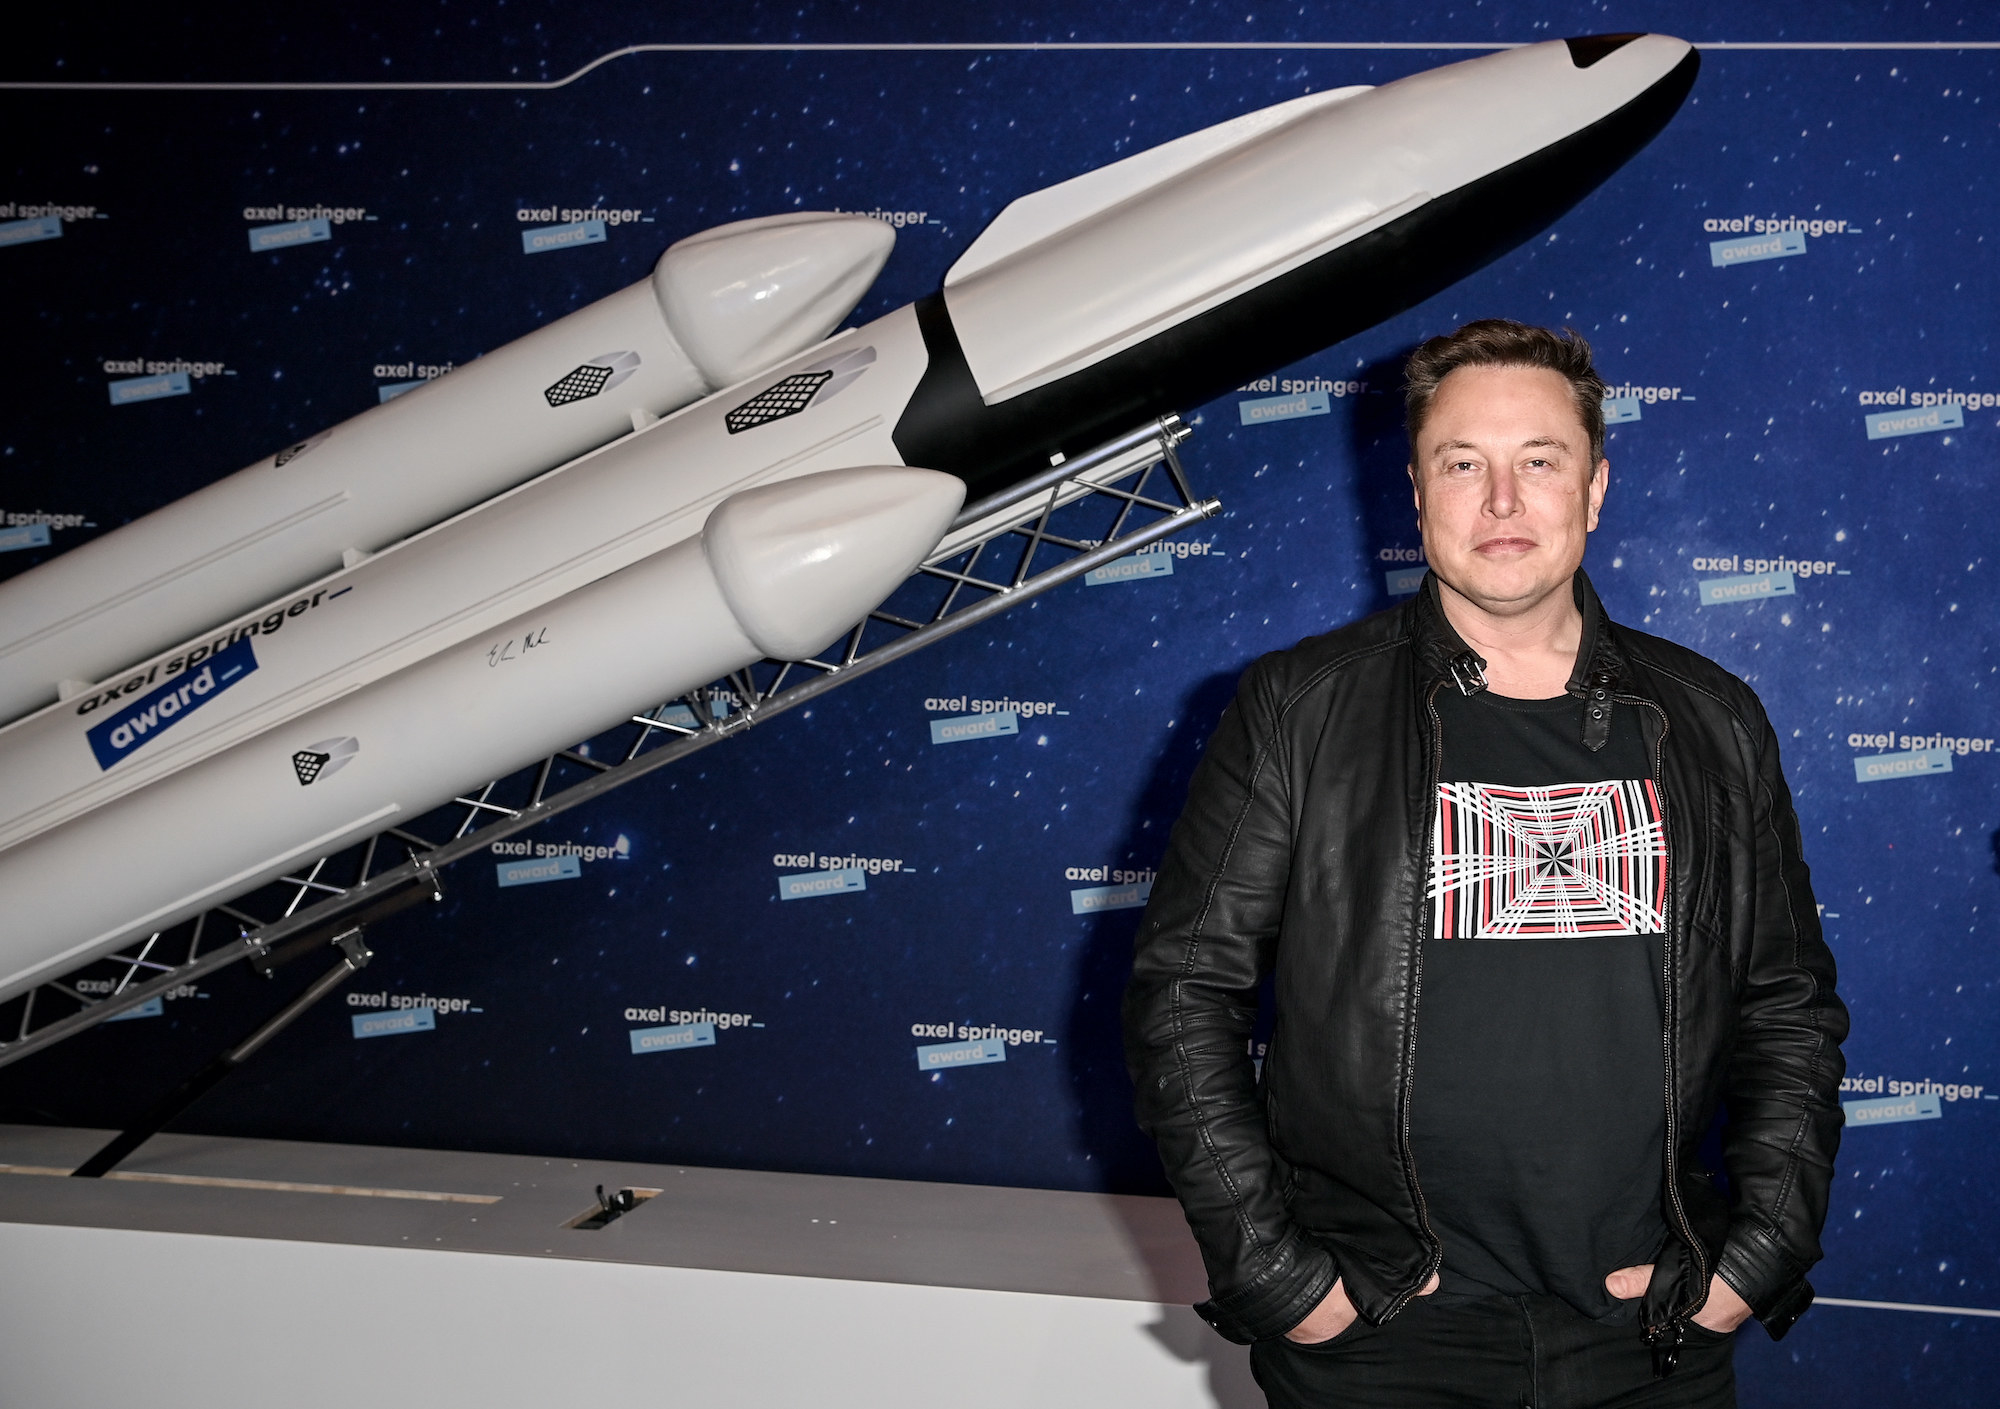 Musk on the red carpet of the Axel Springer Award in Berlin